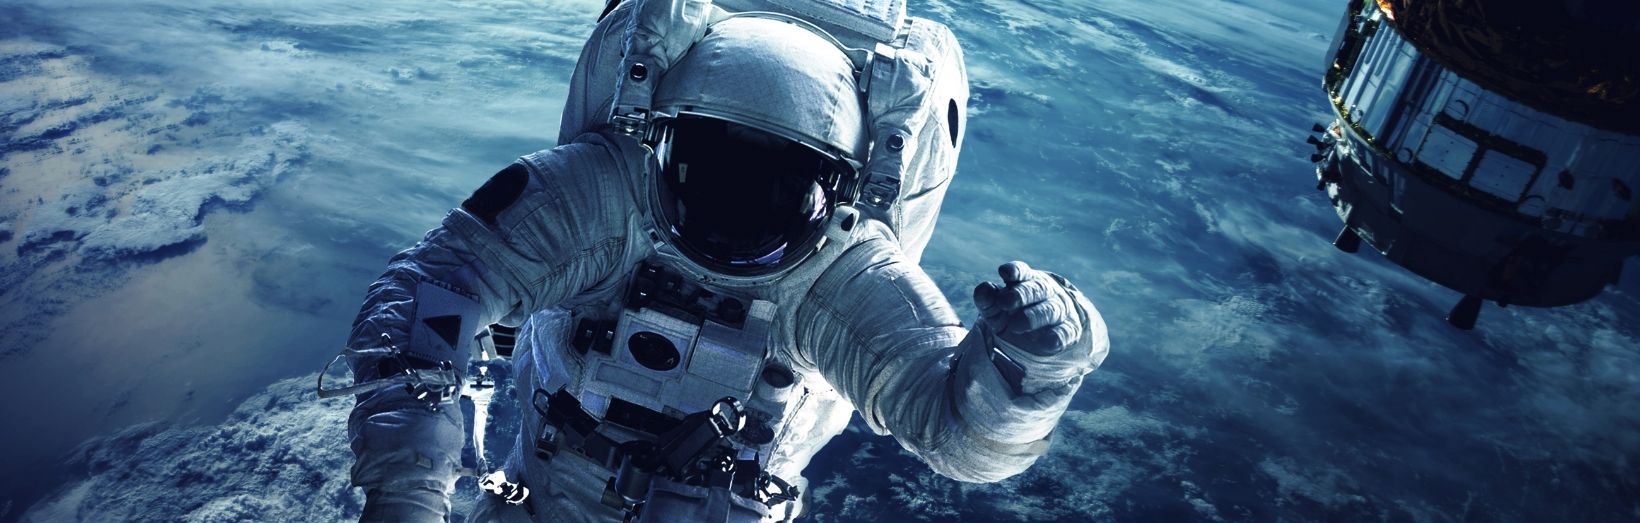 astronaut-outer-space.jpg